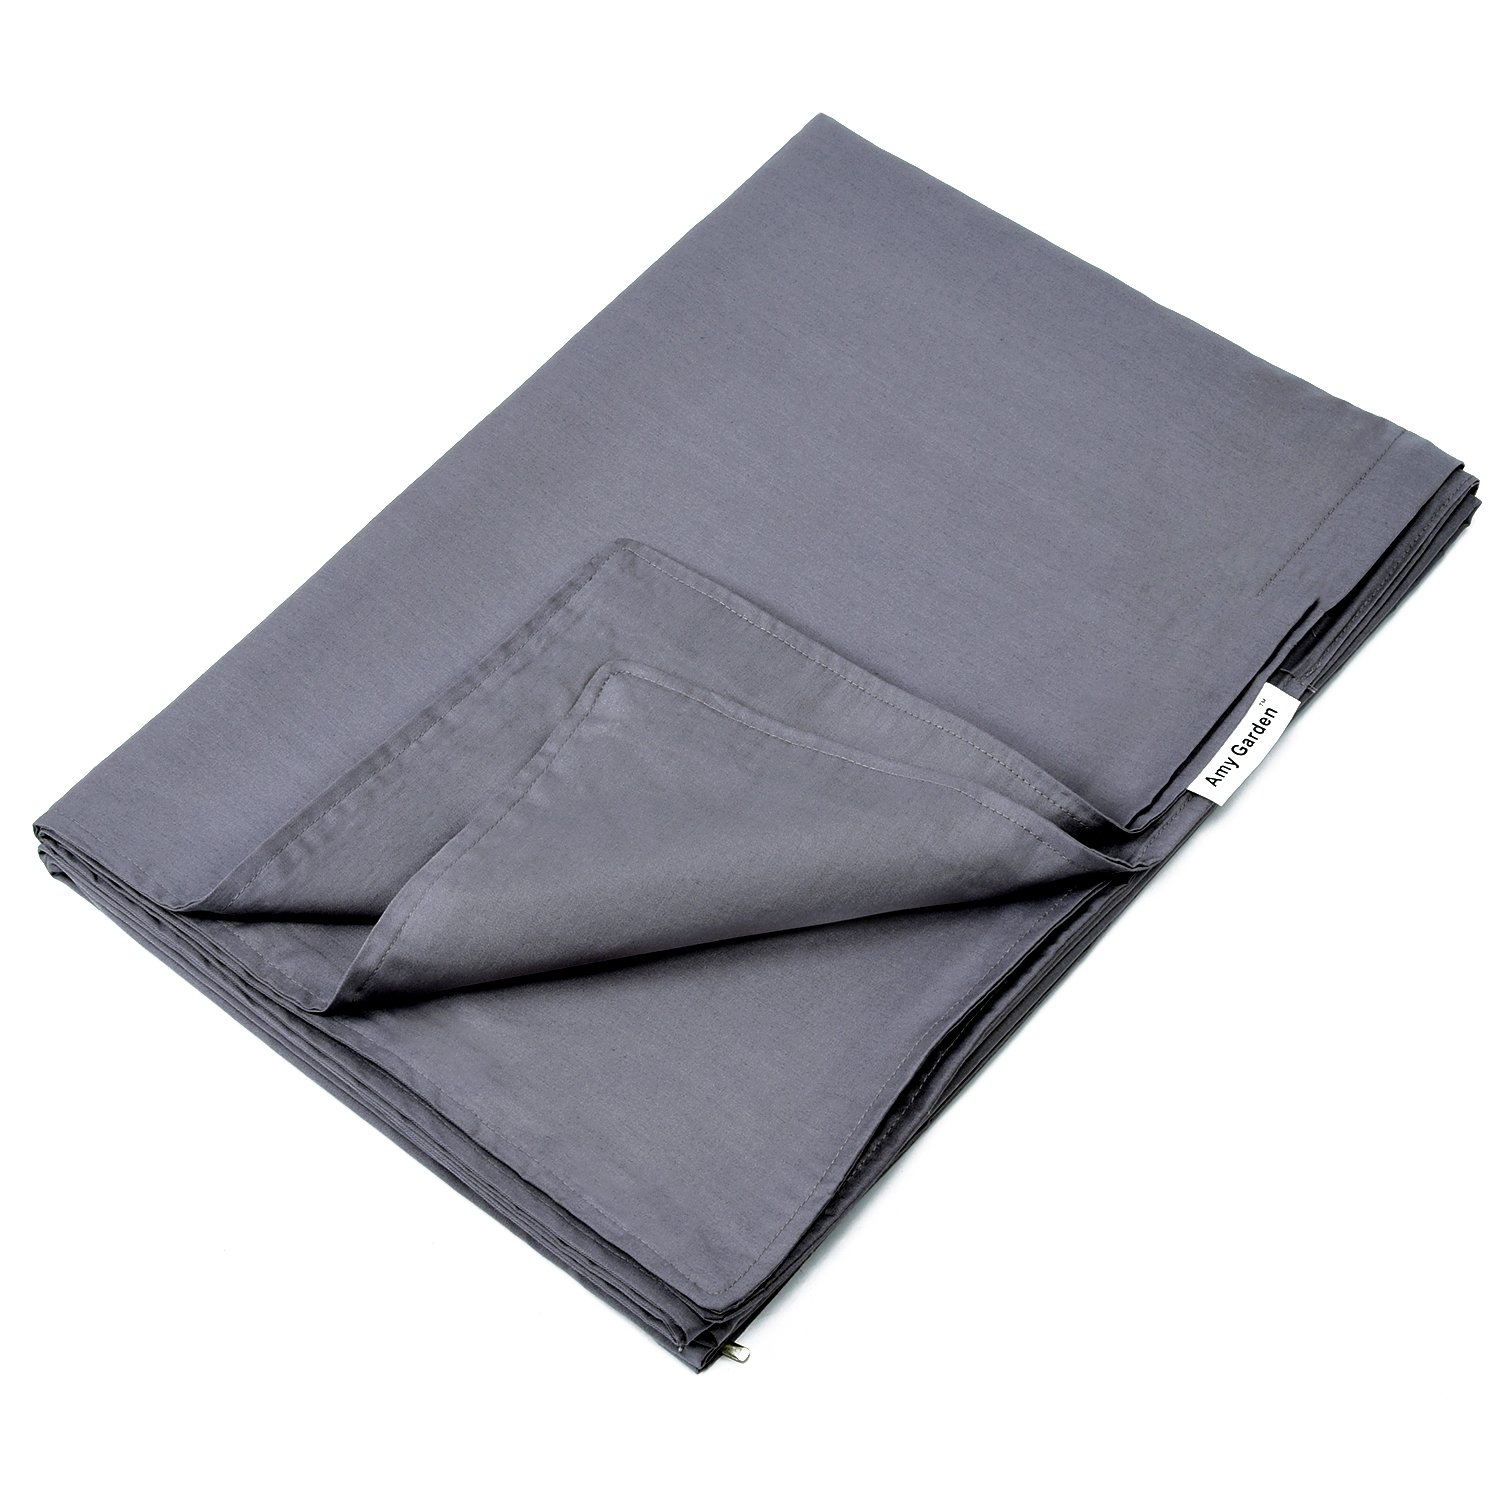 Amy Garden Premium Duvet Covers Cotton Removable Cover for Weighted Blanket Inner Layer,Grey - 48''x72'' (DUVET COVER ONLY)